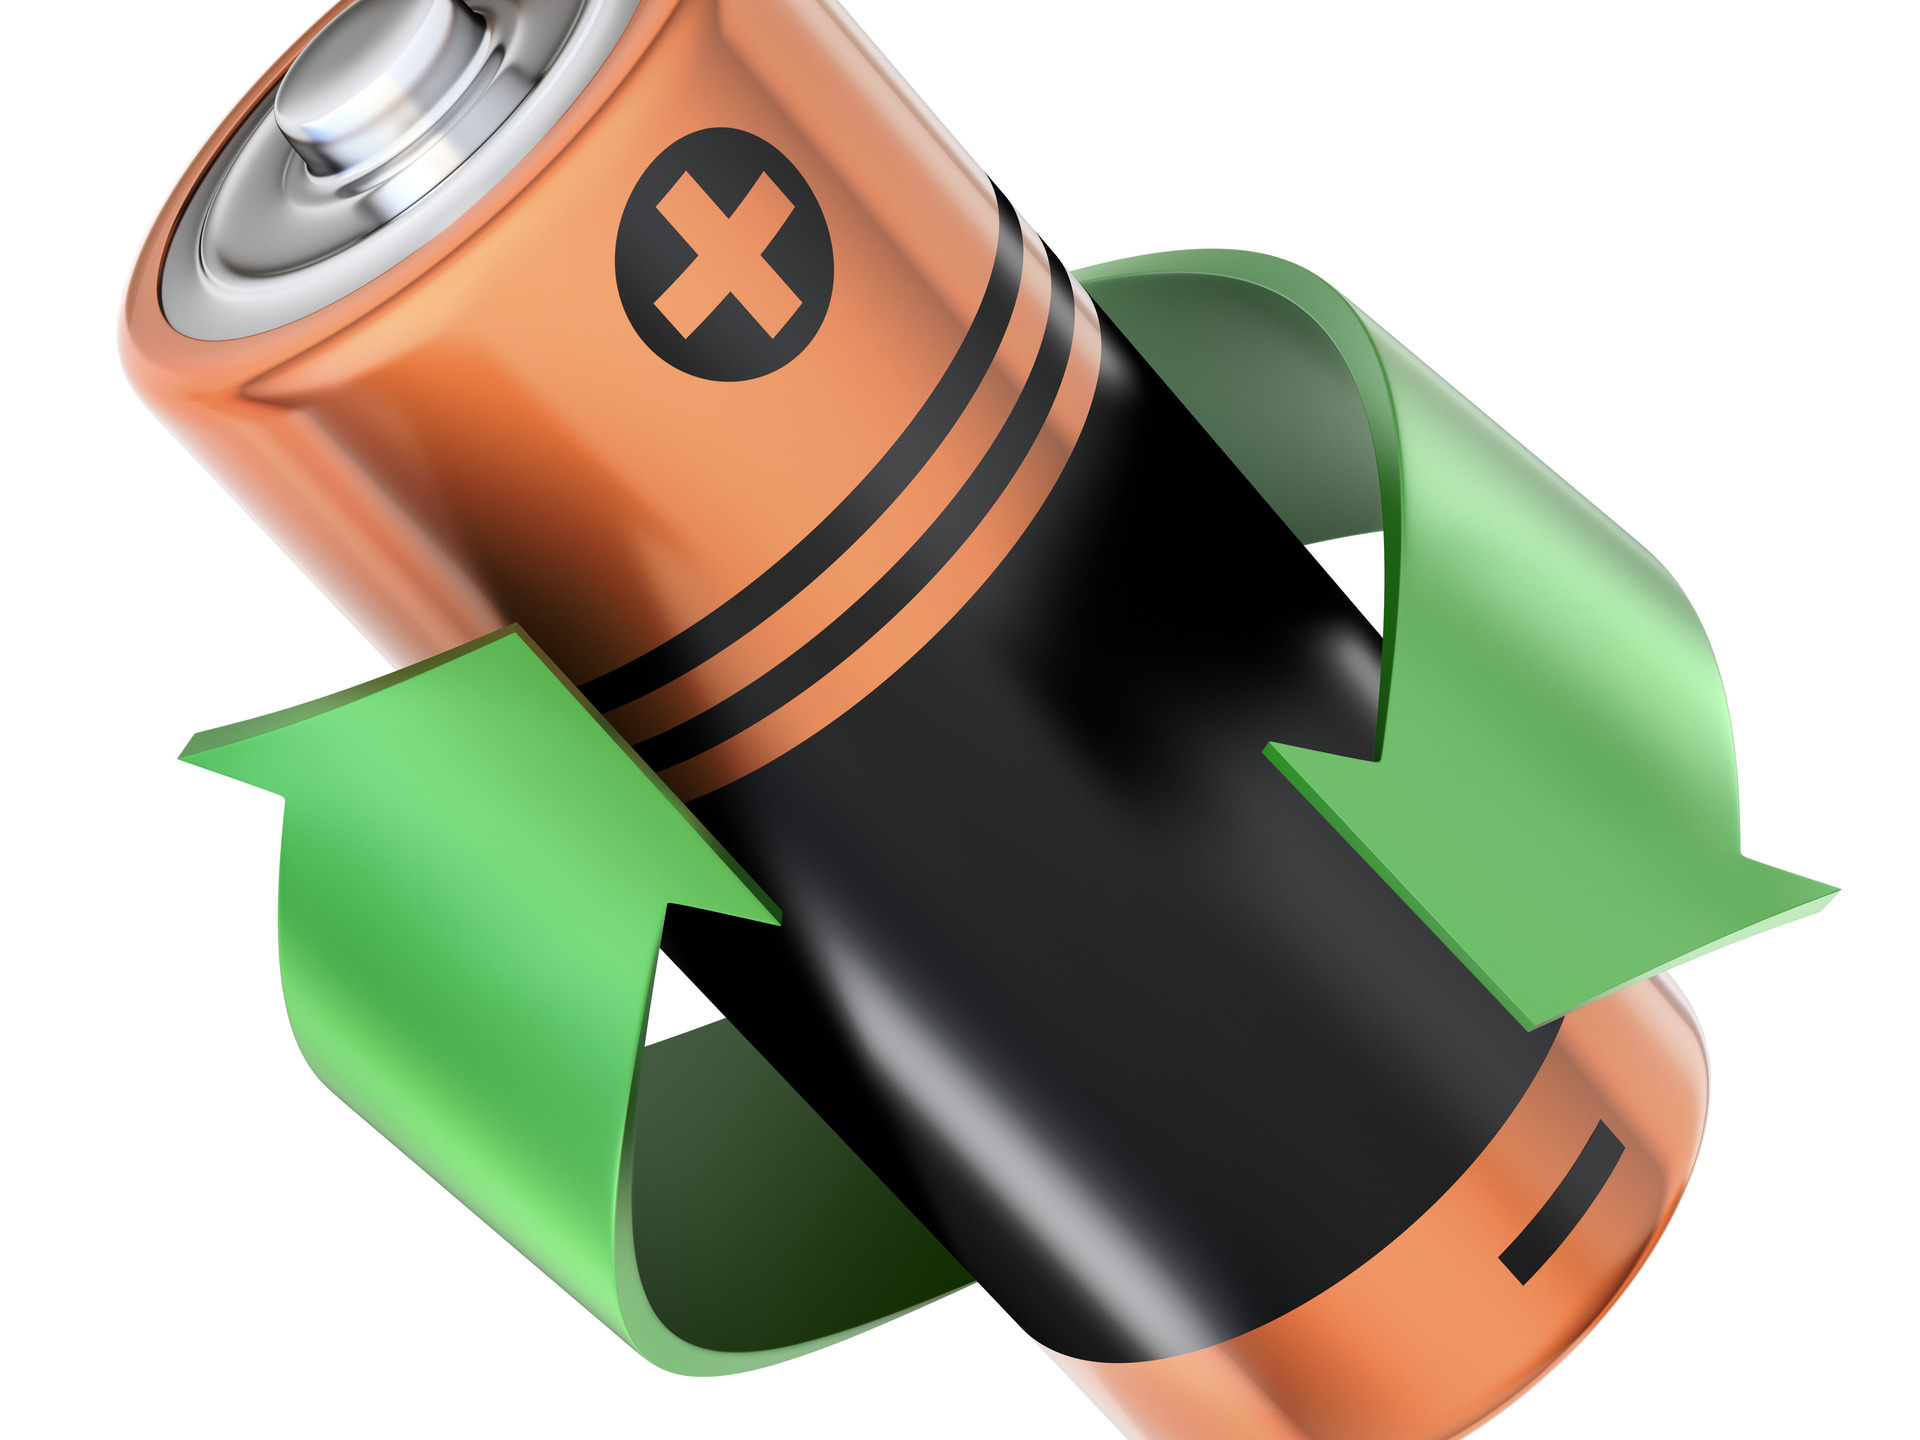 Recycling Batteries as a form of E-Waste Recycling